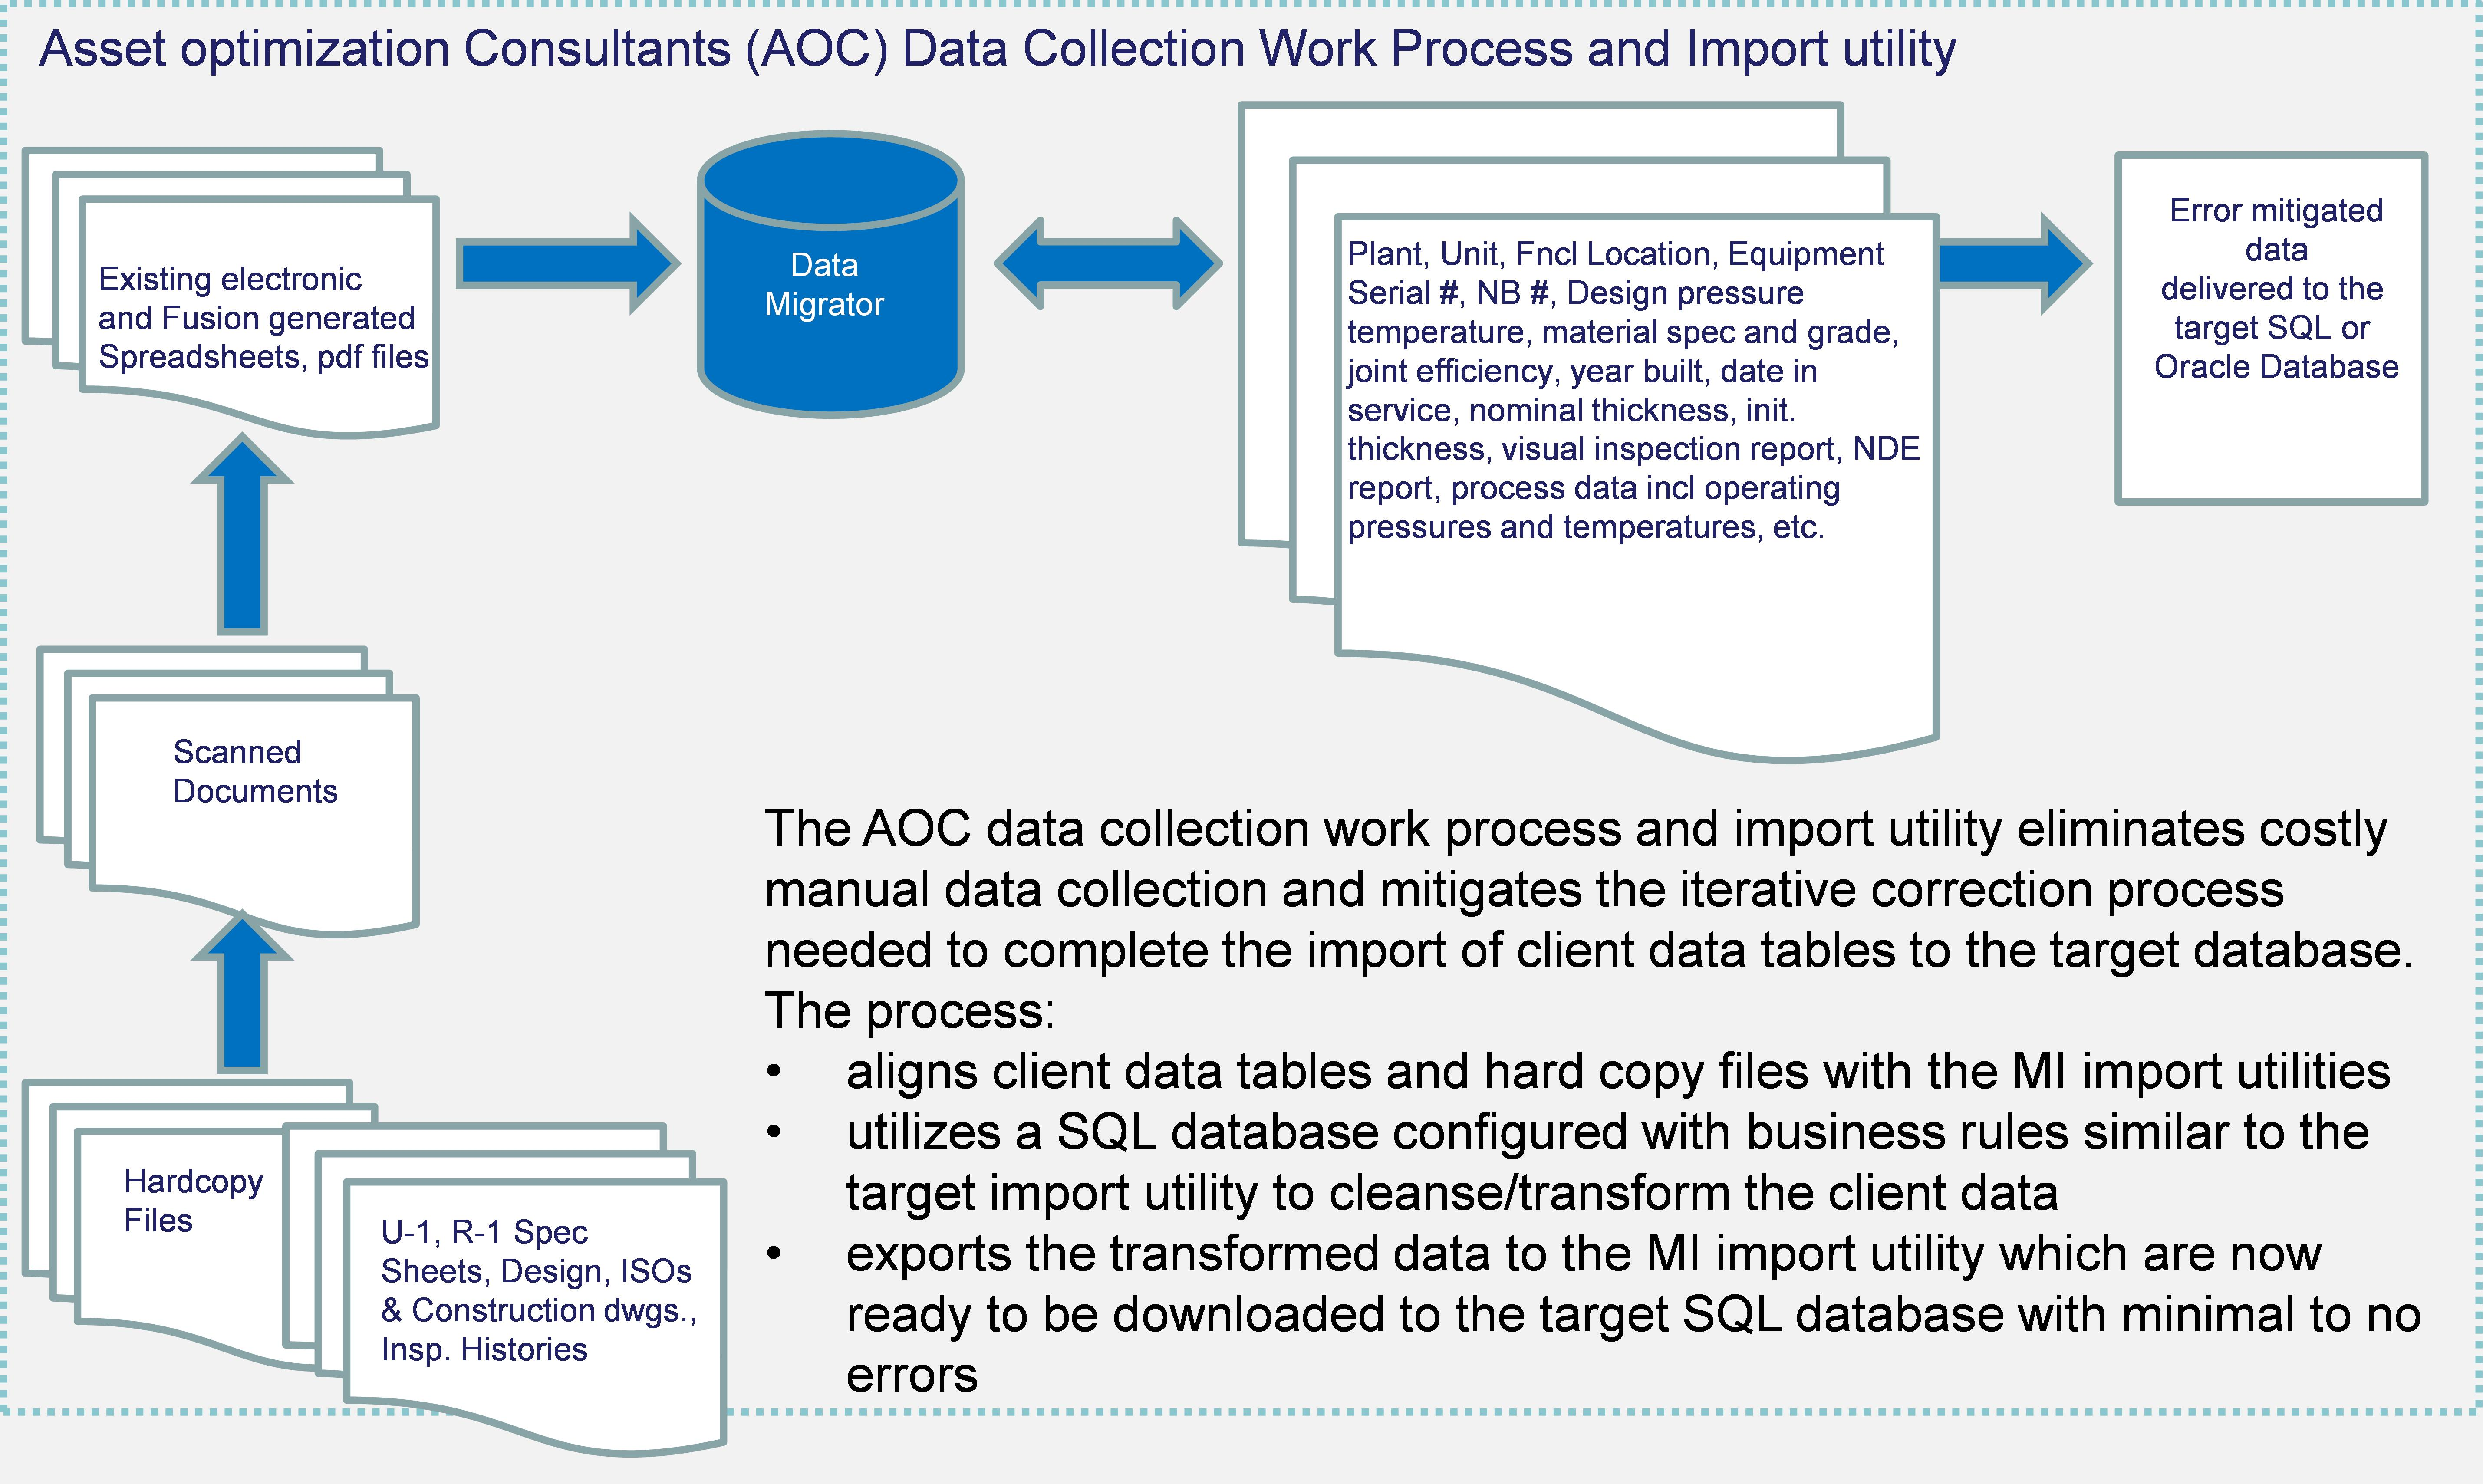 AOC Data Collection Work Process and Import Utility